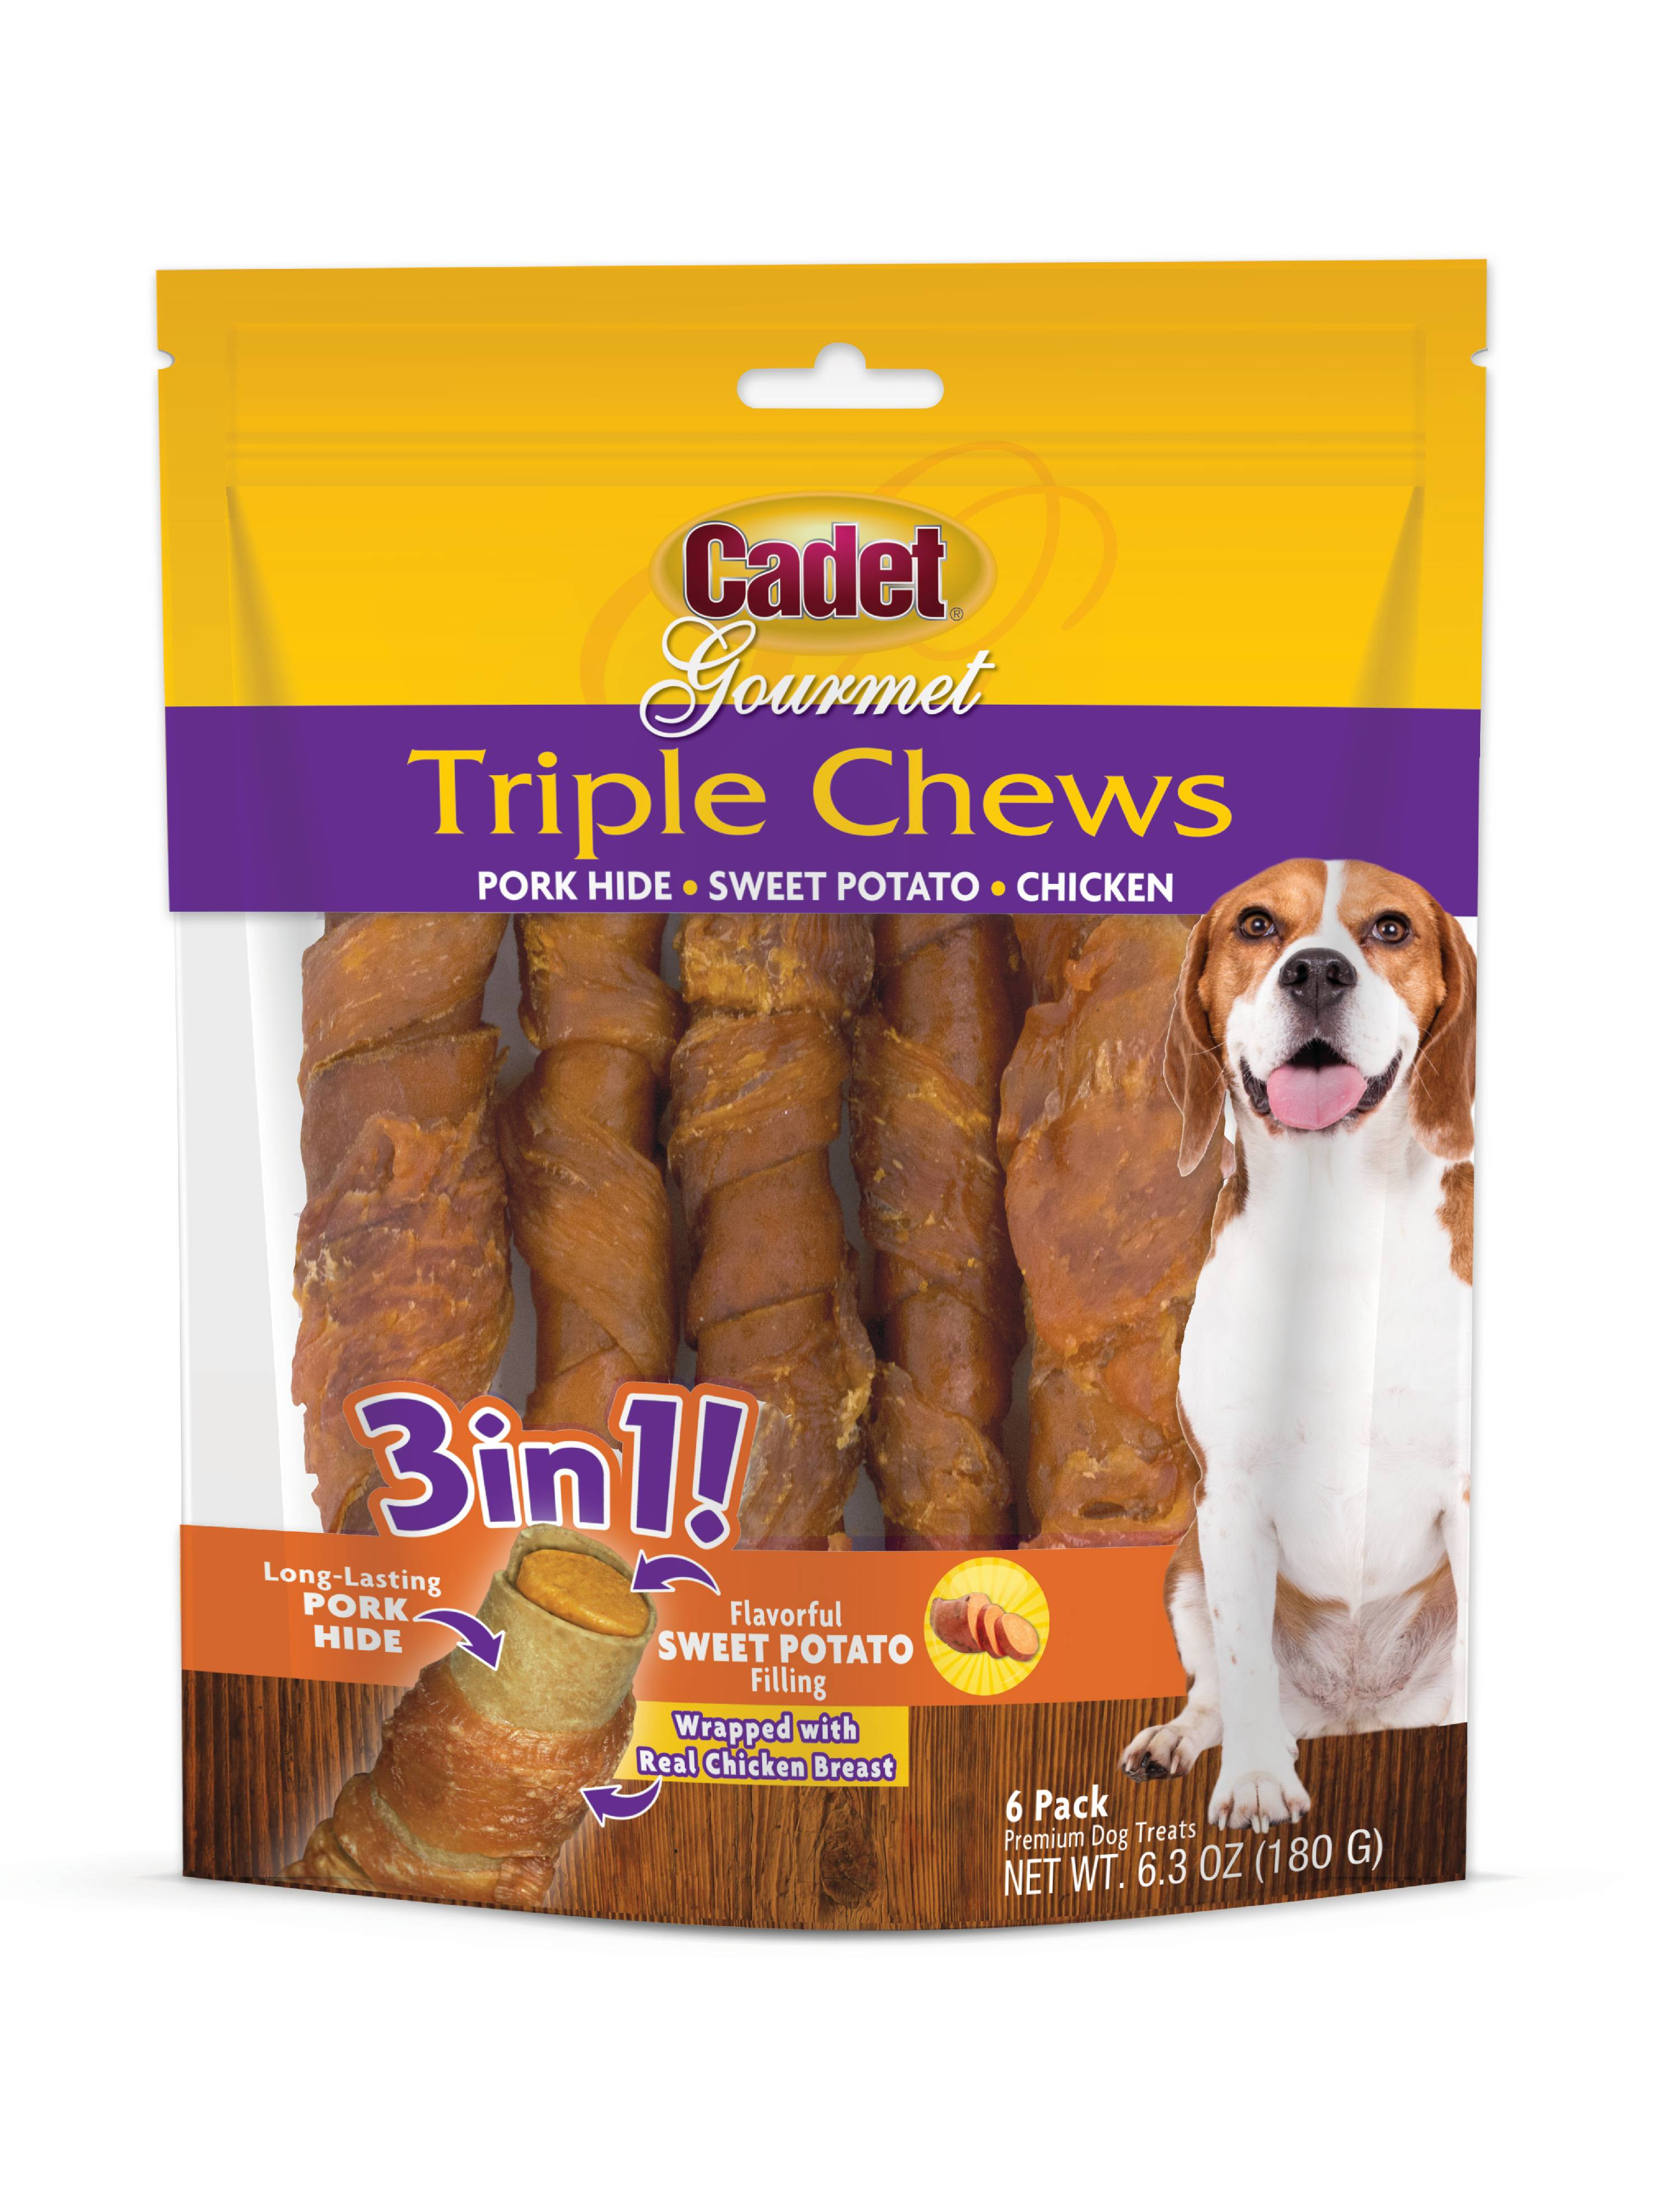 Cadet Gourmet Triple Chews Dog Treat Pork-hide Wrapped in Chicken Stuffed with Sweet Potato, 6 Count by IMS TRADING CORPORATION